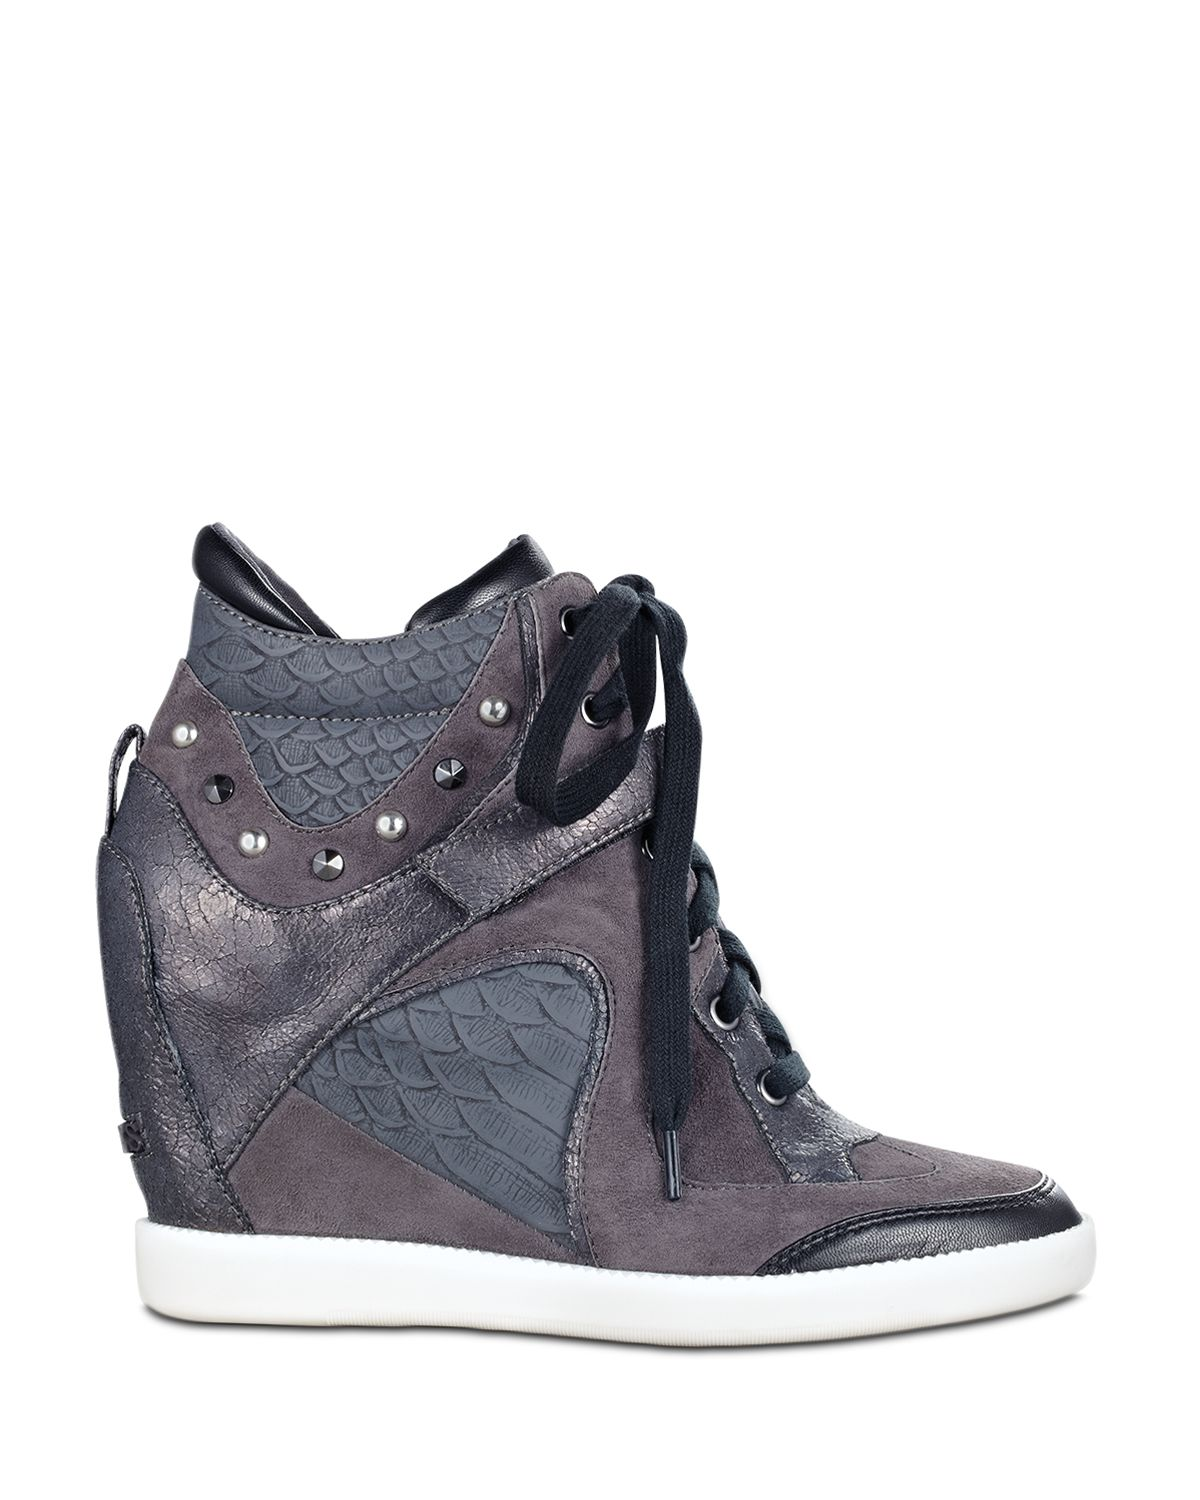 lyst guess wedge sneakers huxley in gray